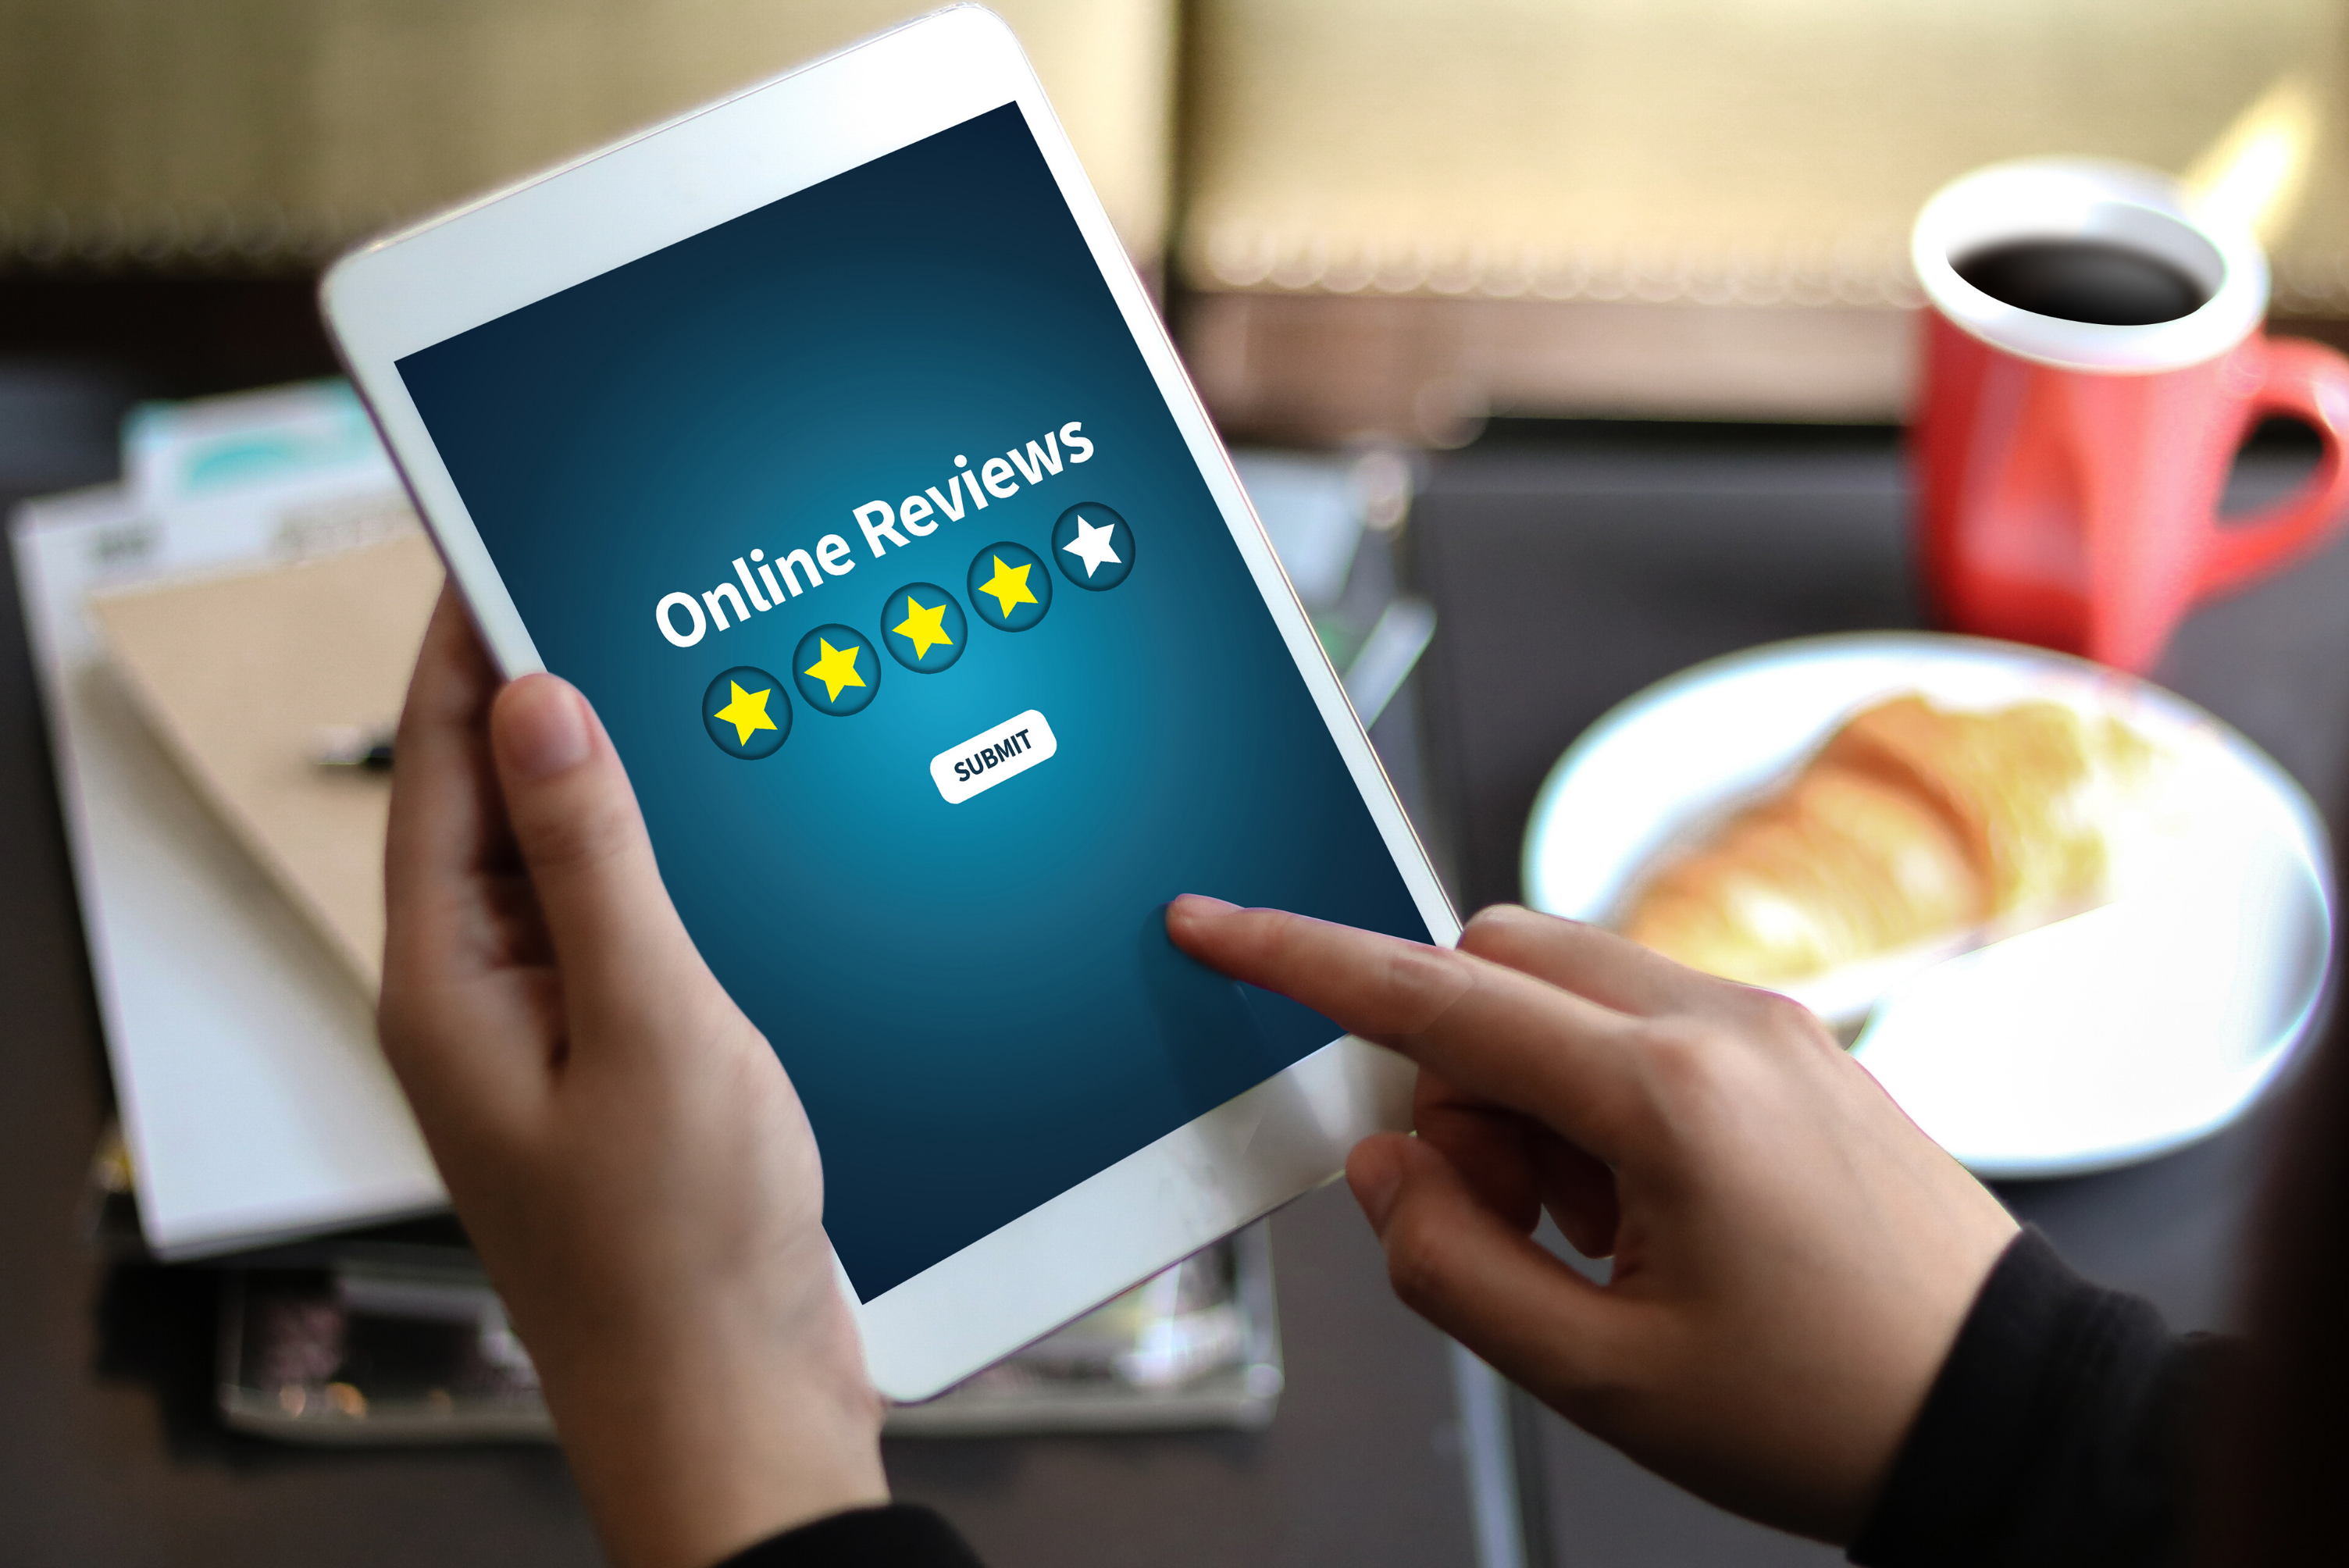 beginners guide to online reviews - banner